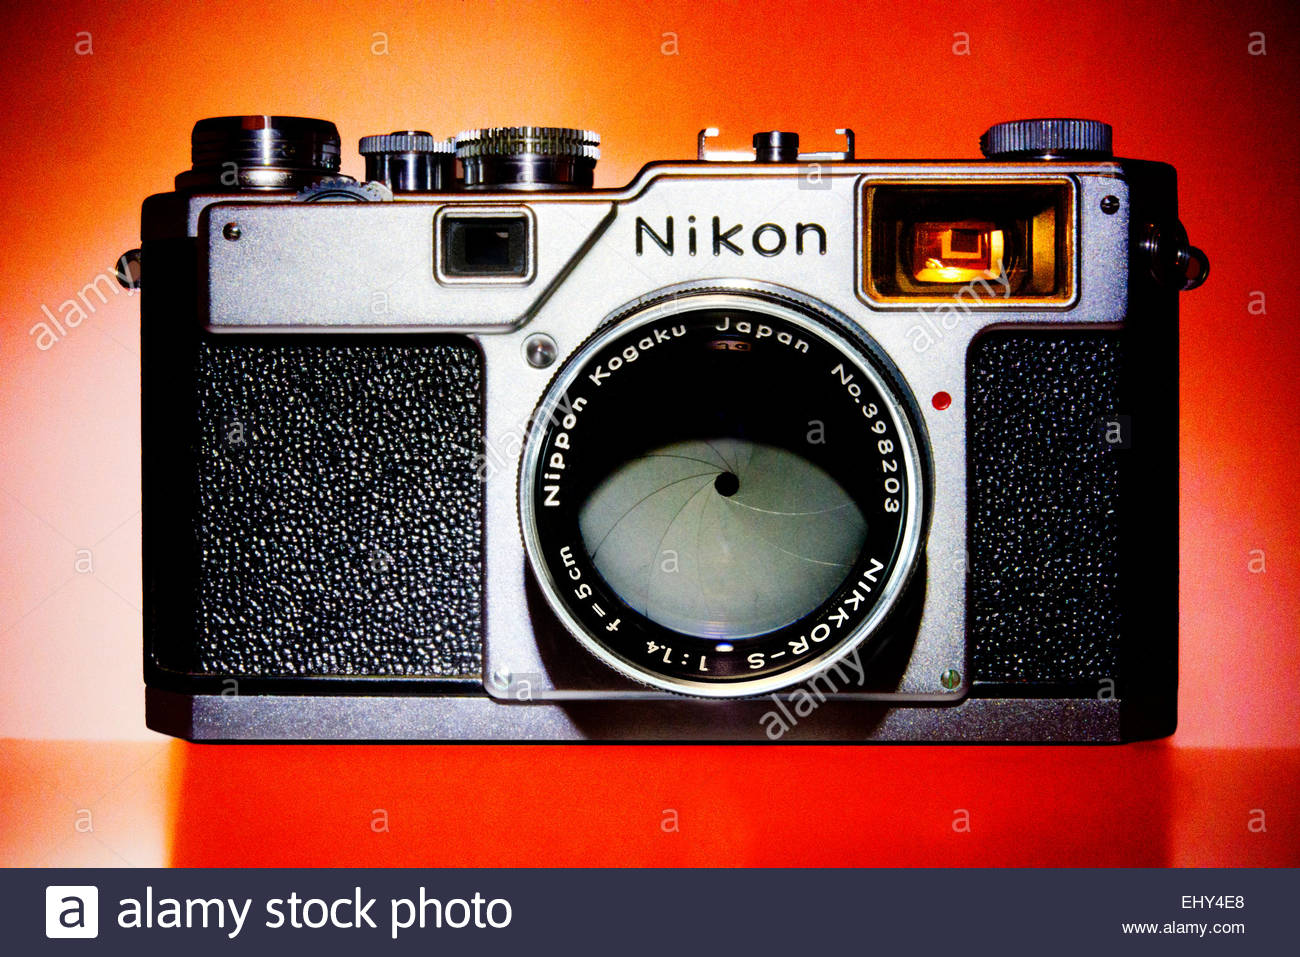 Rare Nikon S4 Rangefinder Camera with 5cm 1.4 Lens. The S4 was made for the Japanese Market only 5000 were produced. - Stock Image